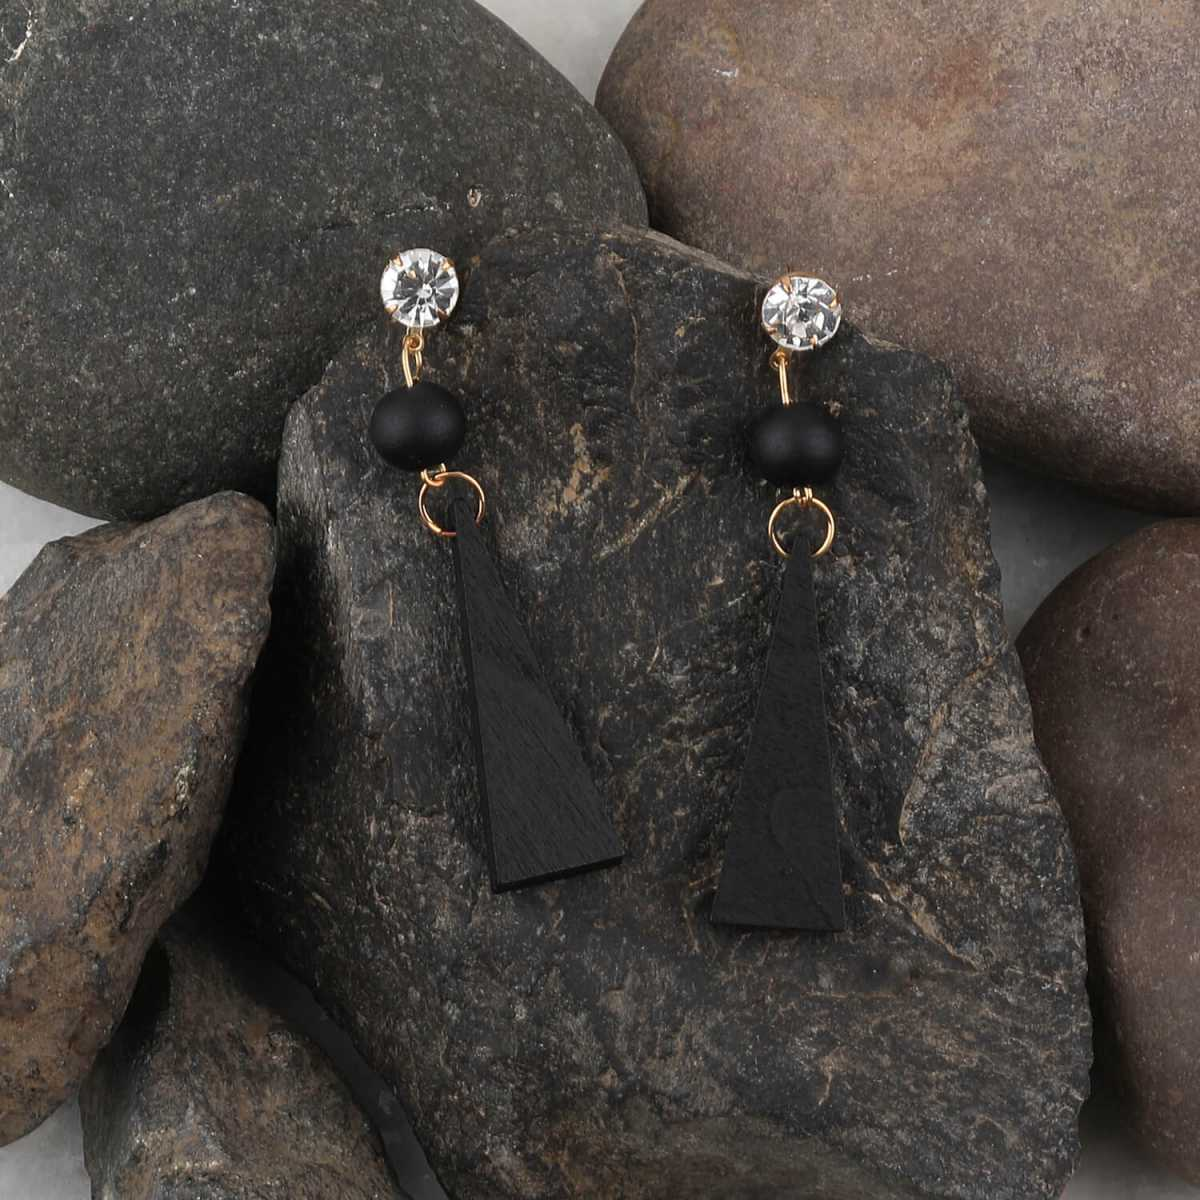 SILVER SHINE Exclusive Diamond Black Wooden Earrings Long Dangler Light Weight for Girls and Women.